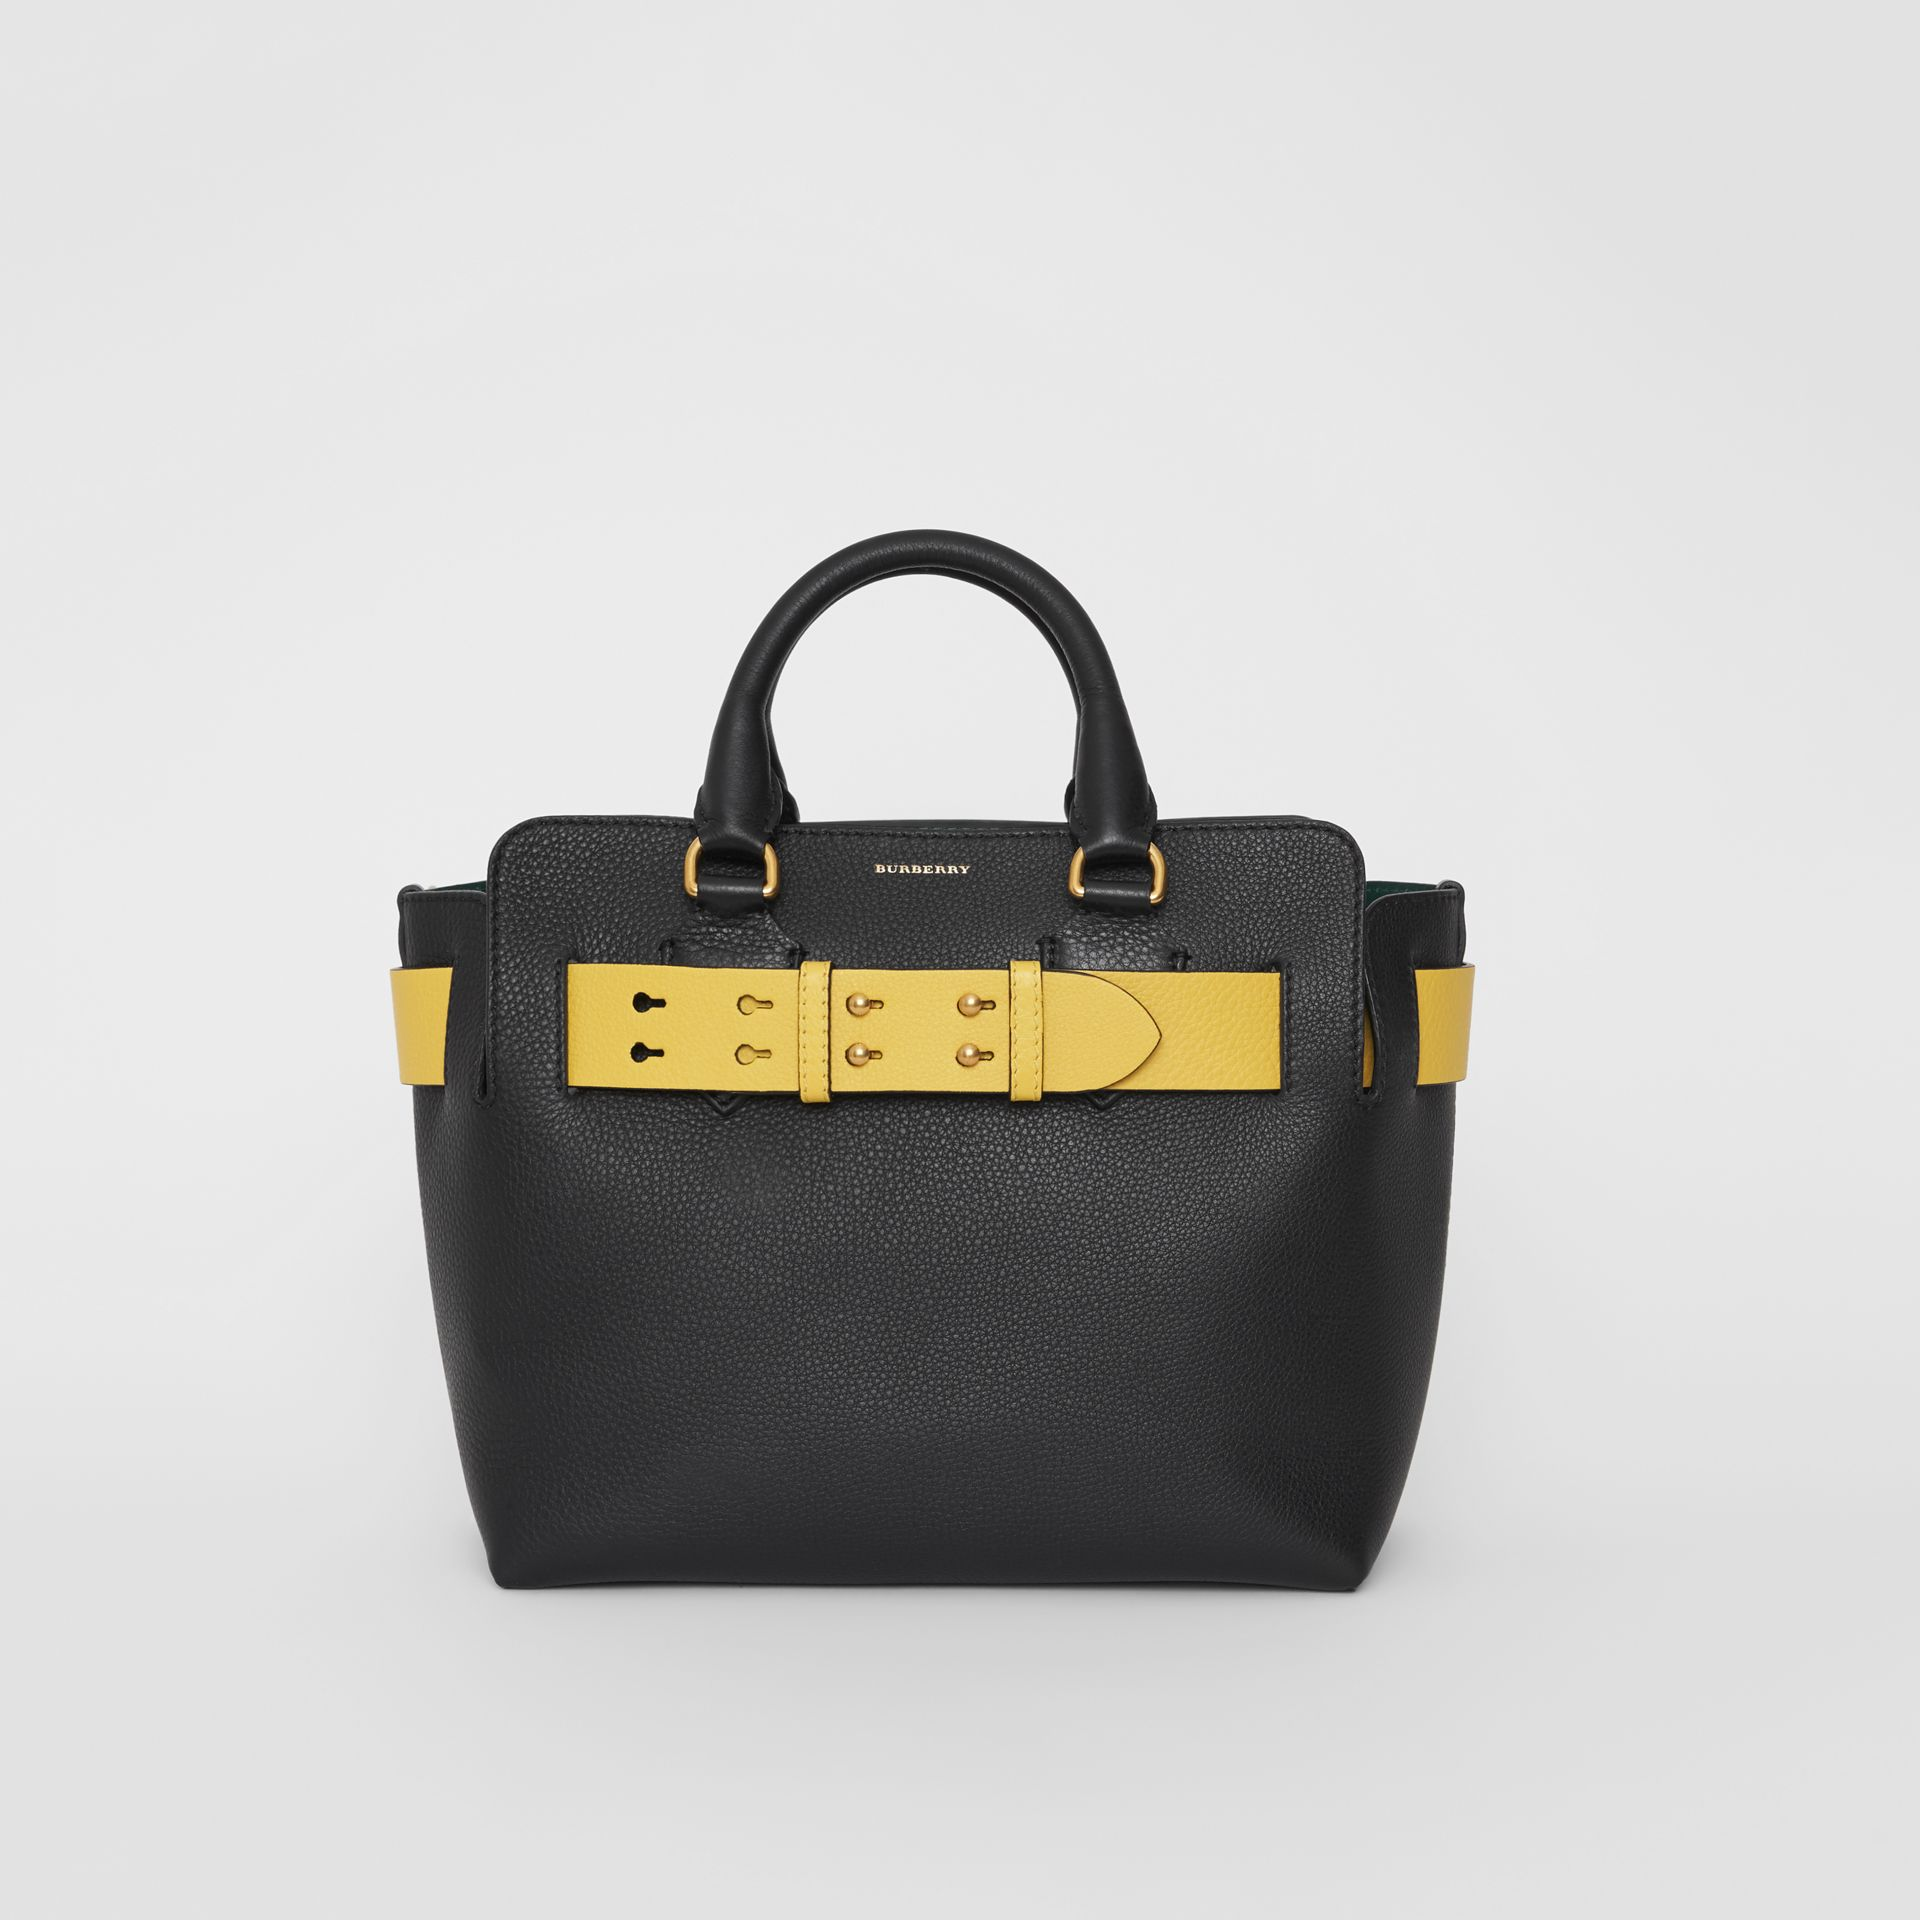 Petit sac The Belt en cuir (Noir/jaune) - Femme | Burberry - photo de la galerie 0